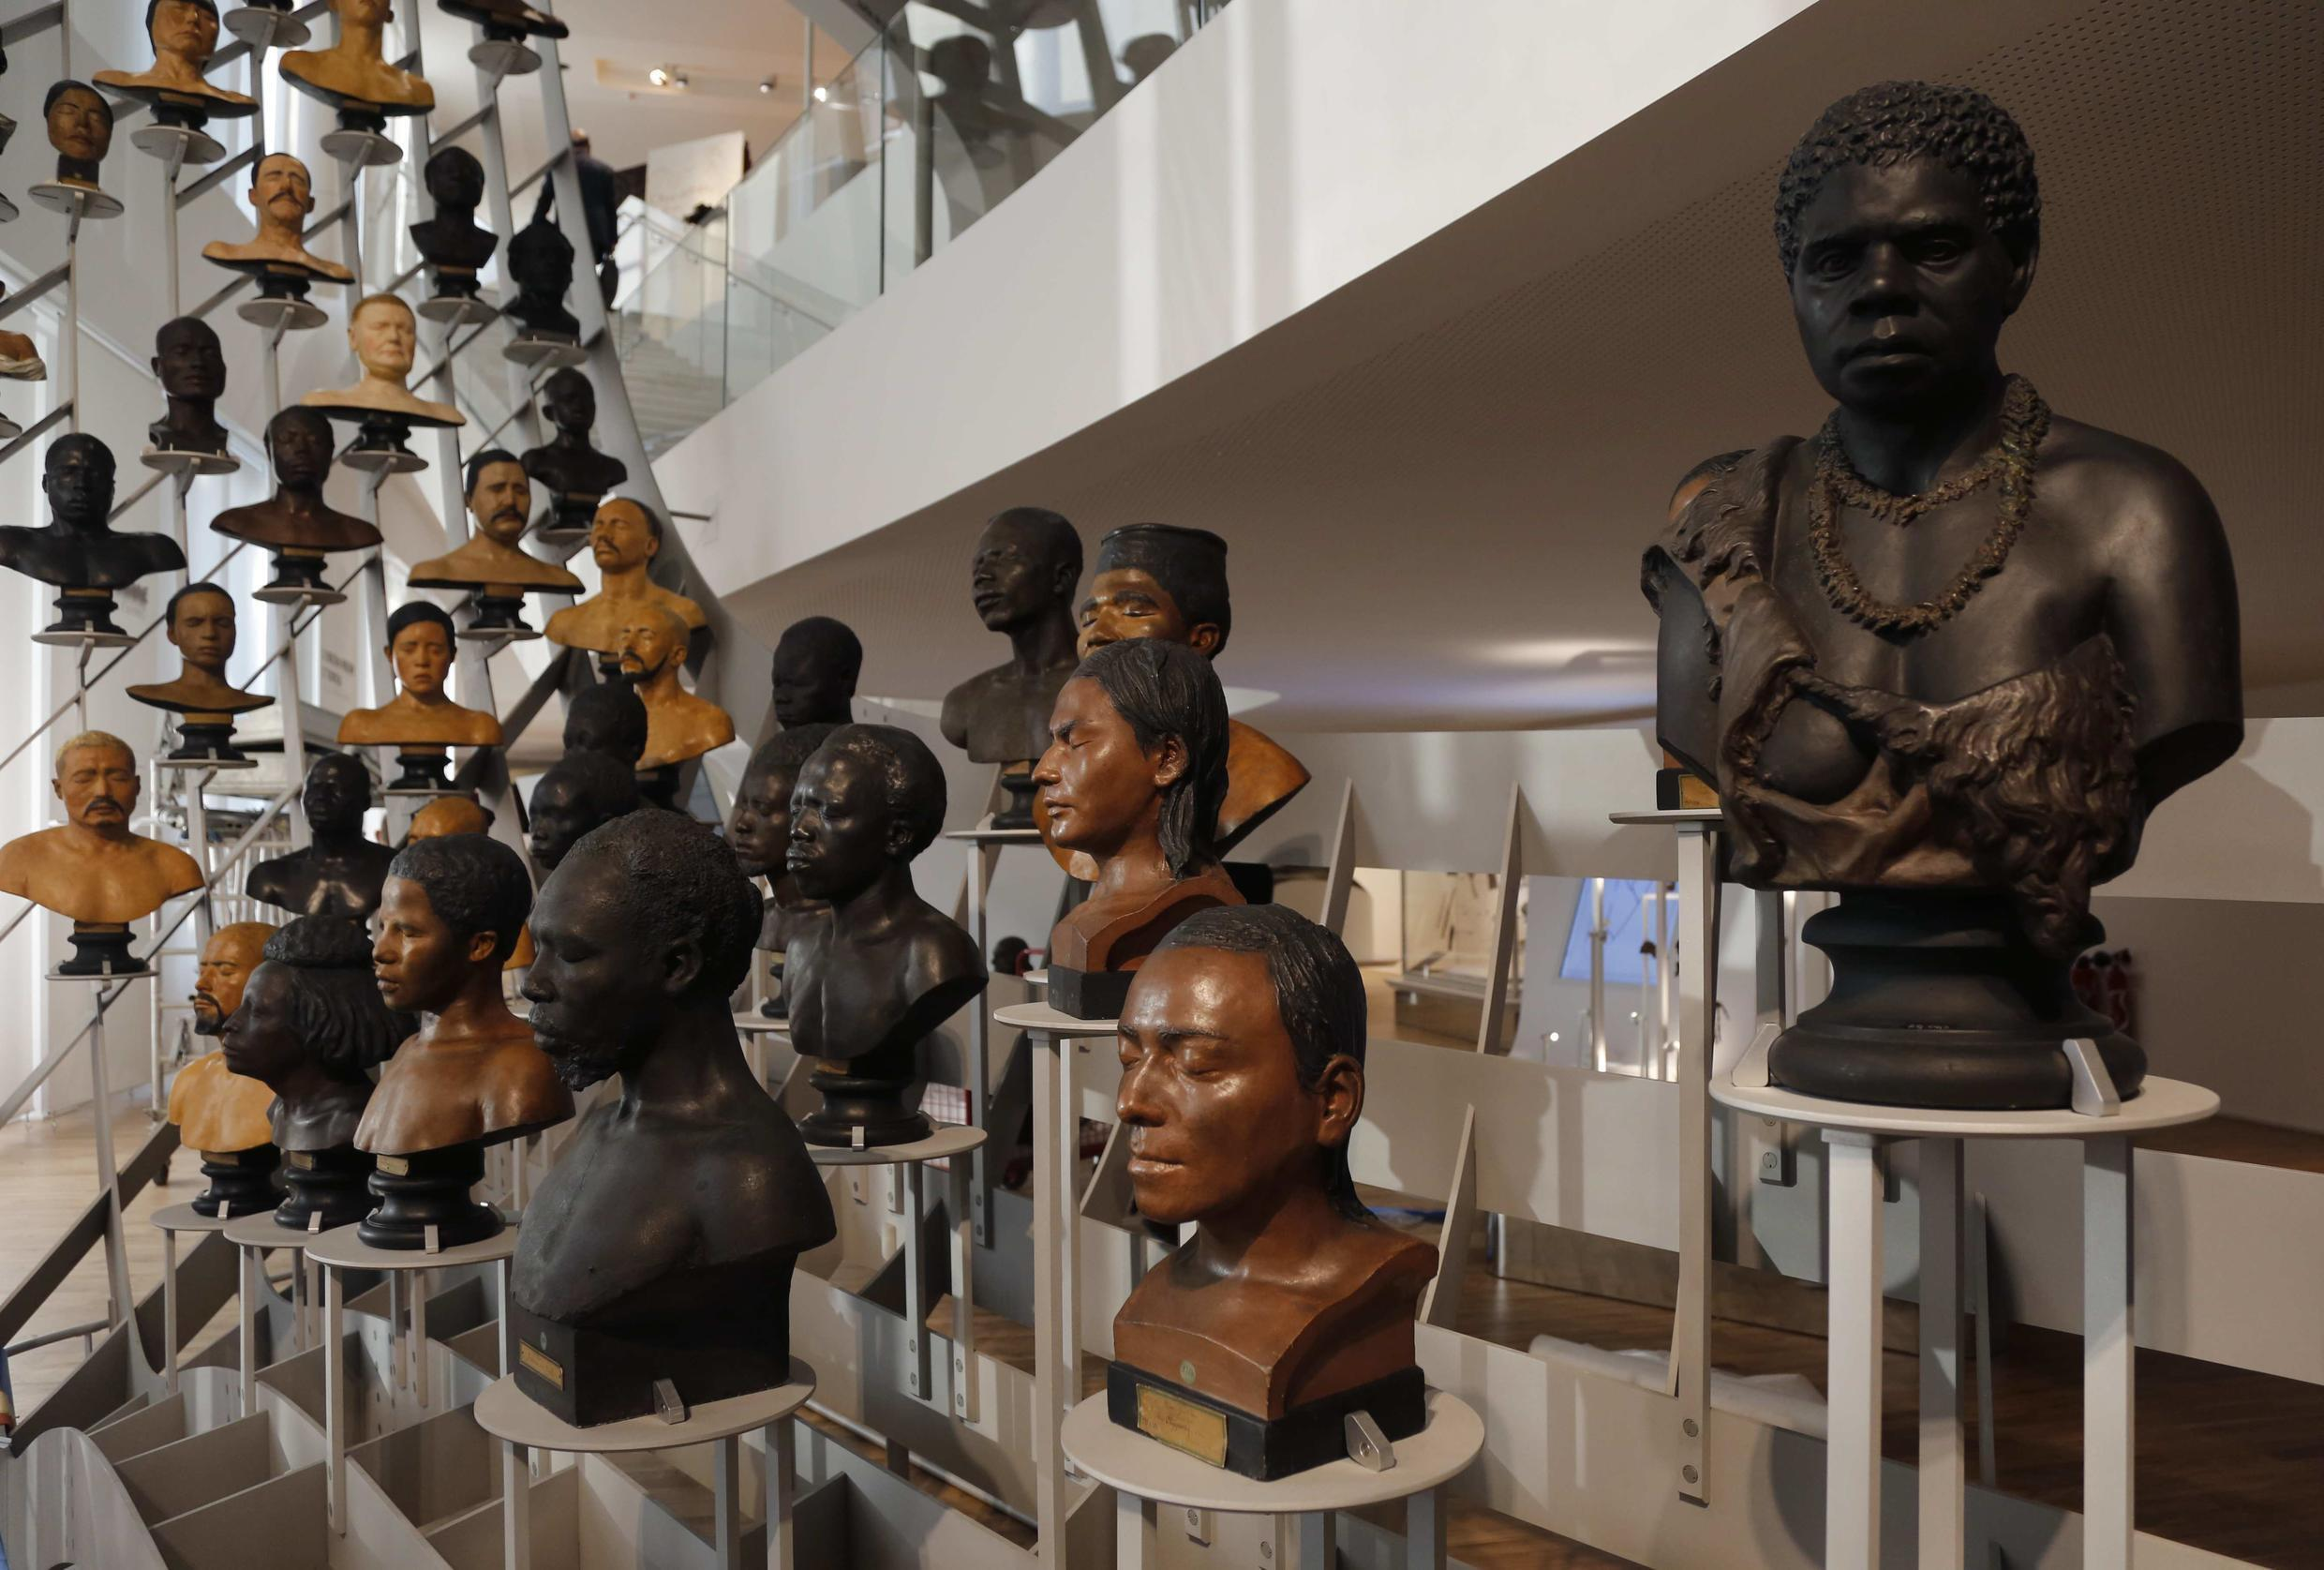 A gallery of busts from the 19th century at the Museum of Mankind (Musee de l'Homme) in Paris, 14 October 2015.